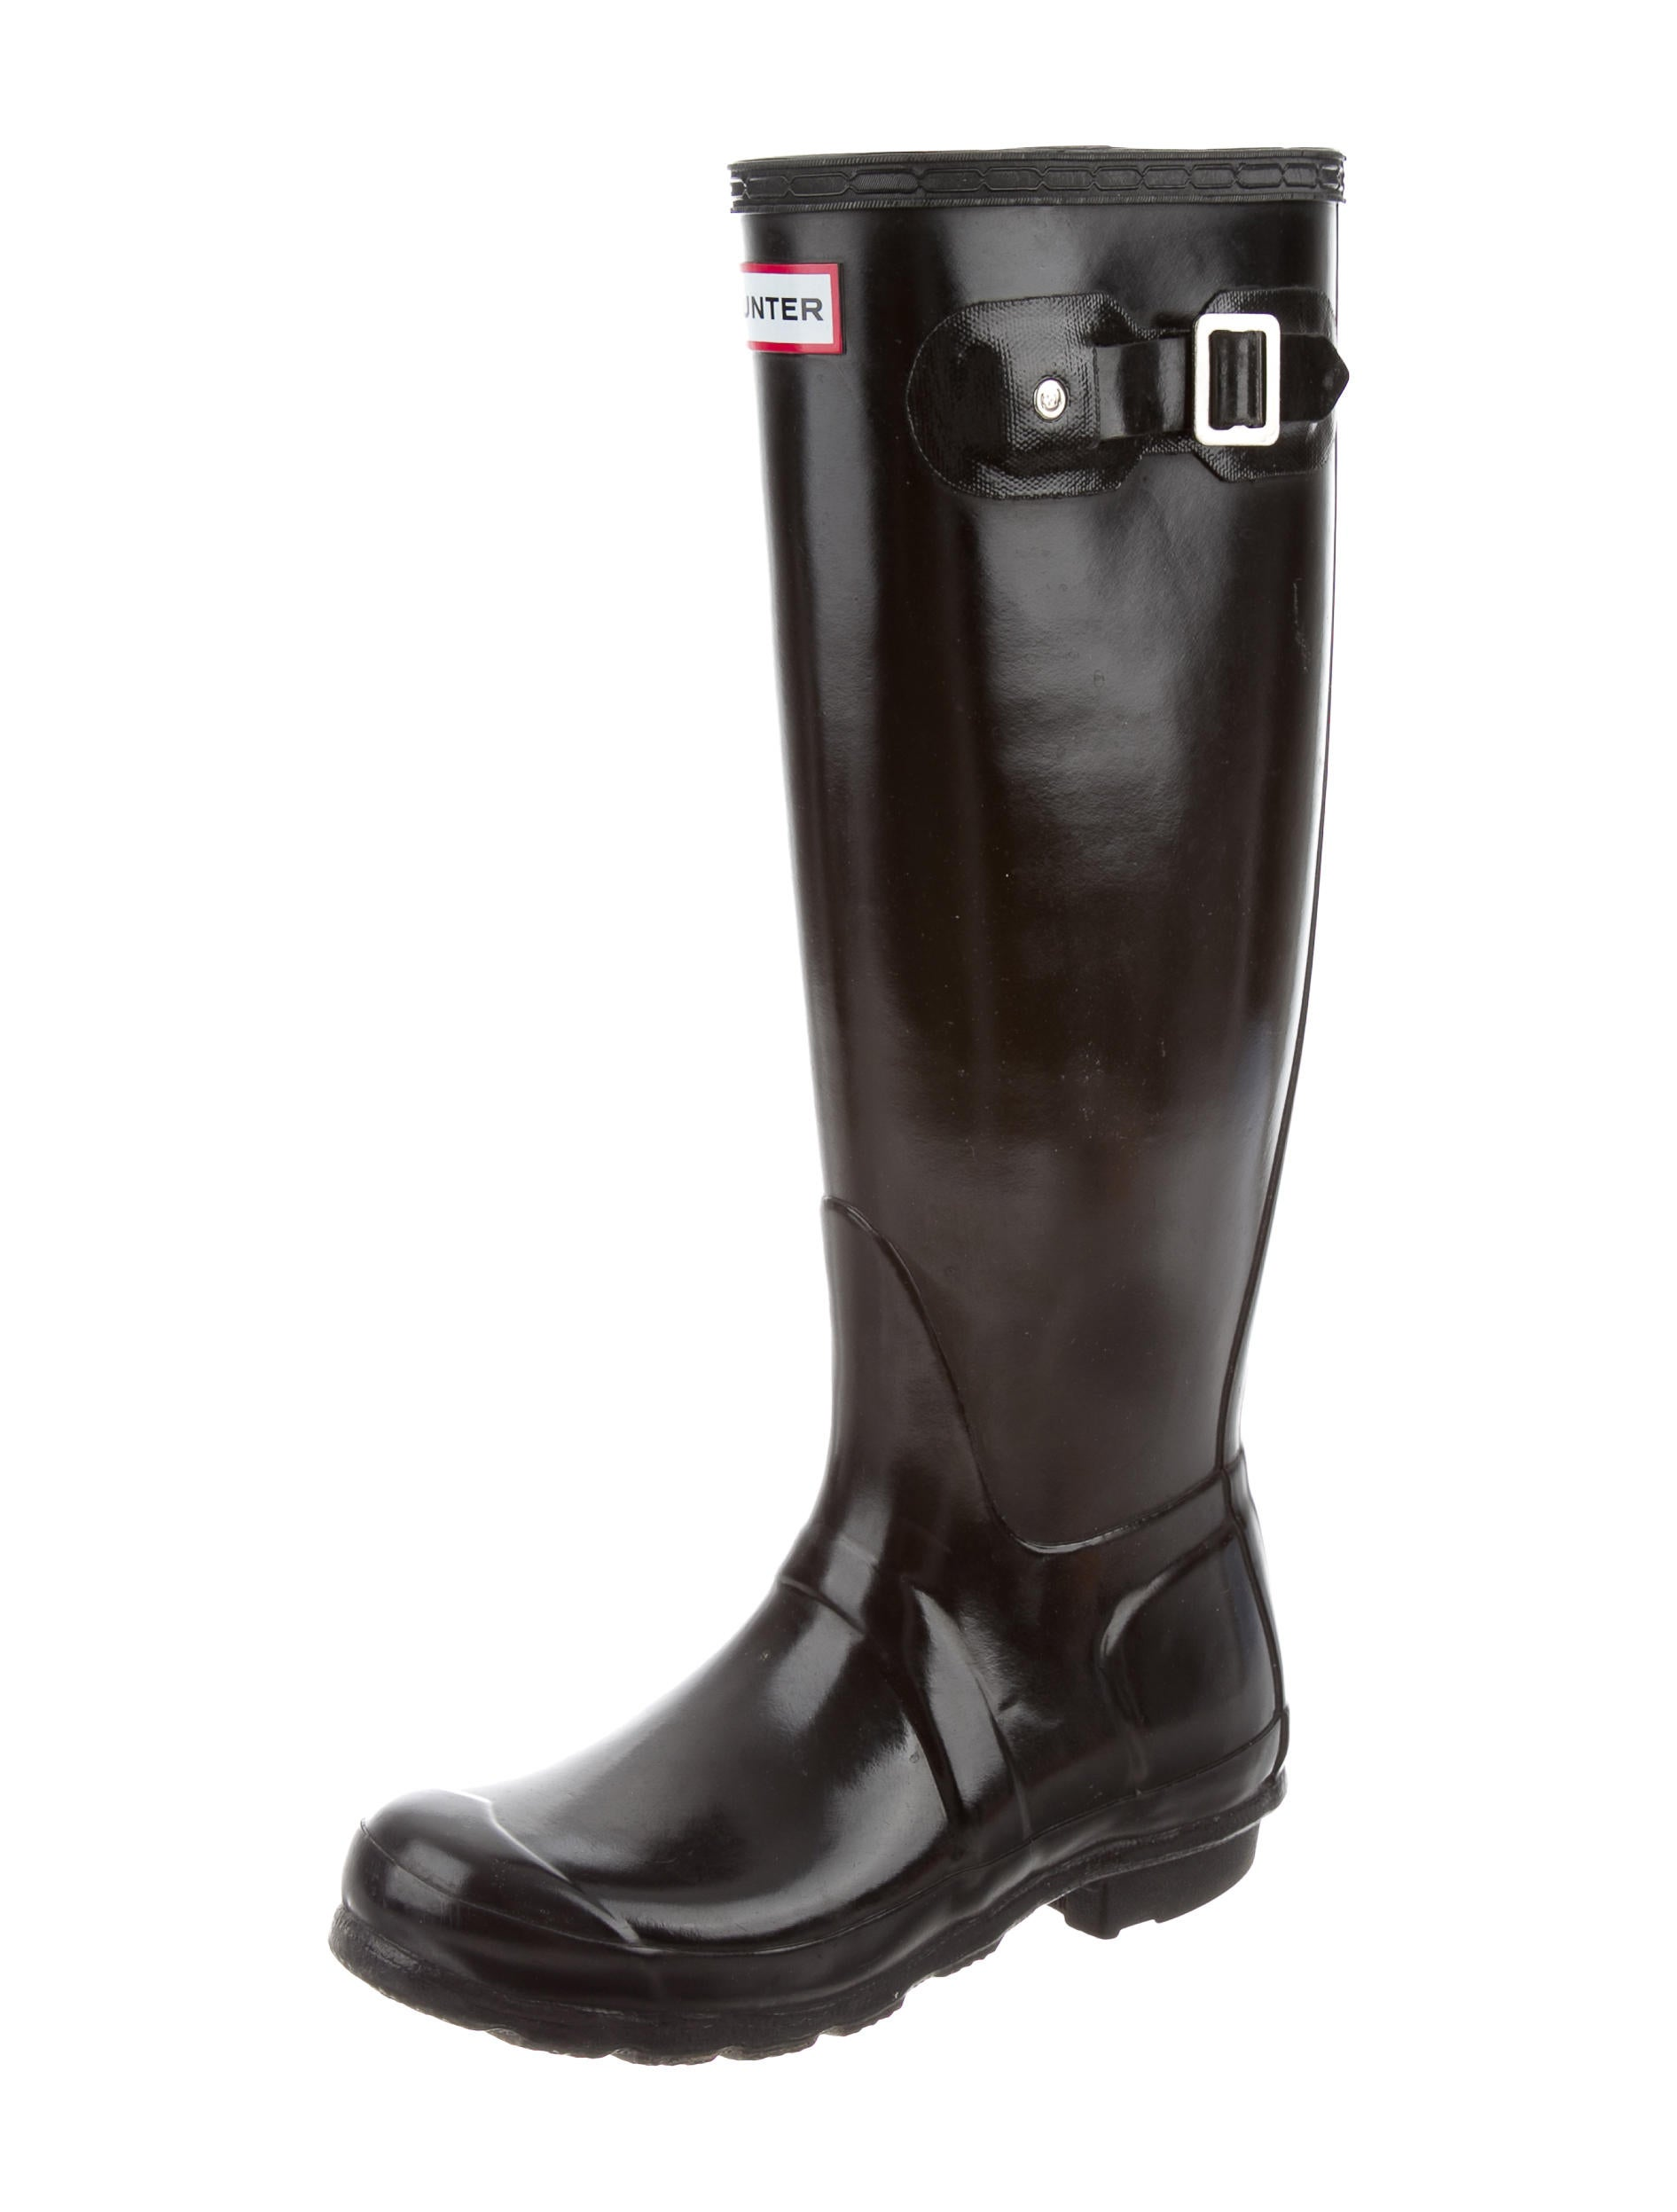 Hunter Knee-High Rain Boots - Shoes - WH820898 | The RealReal